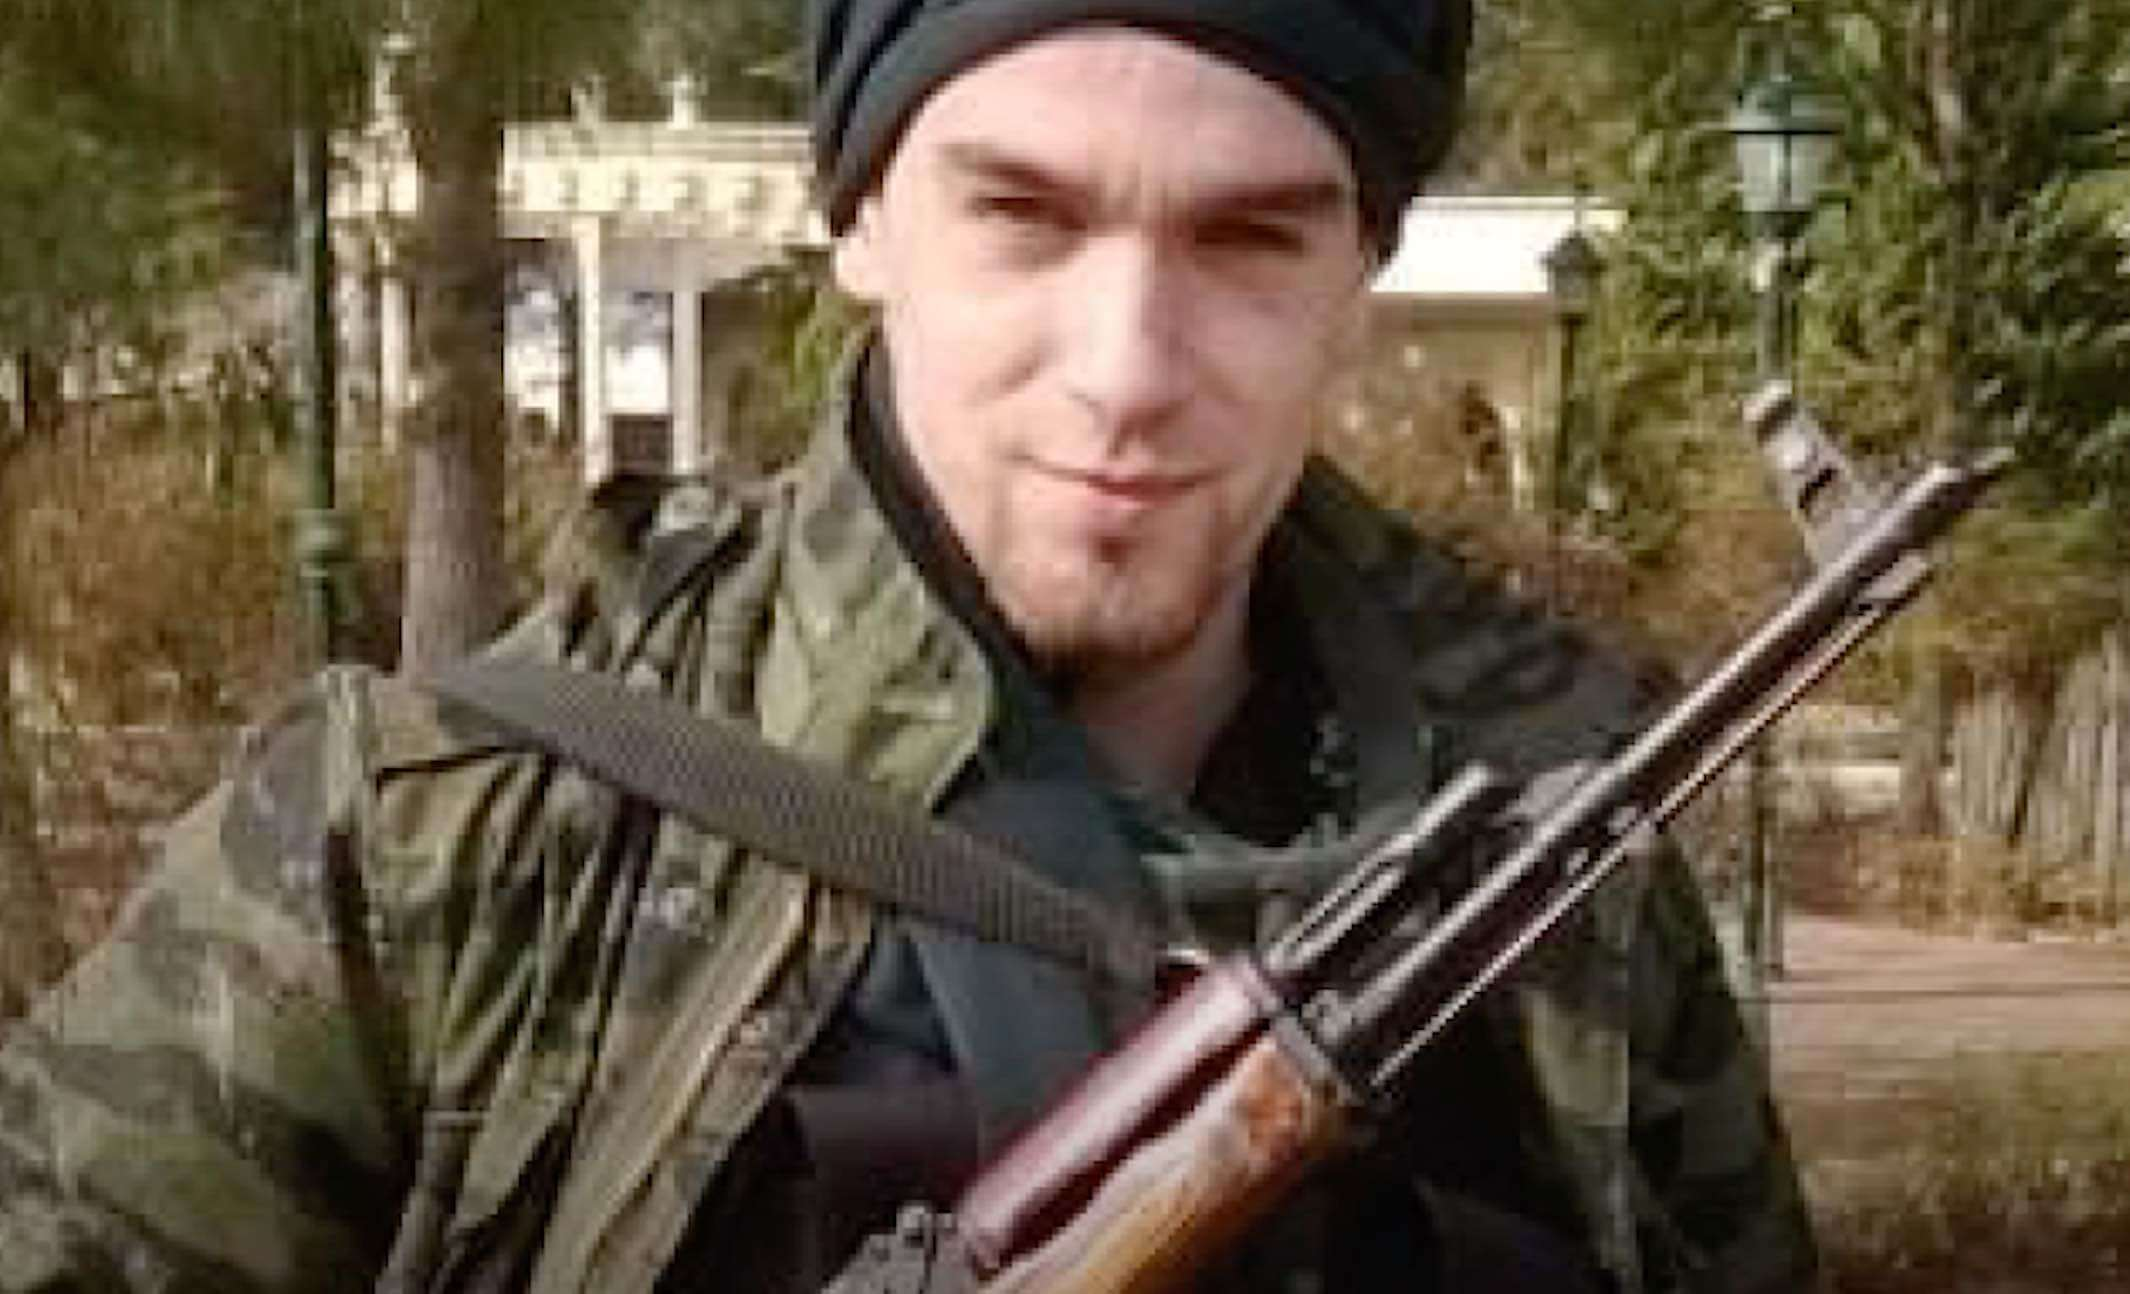 A Belgian Serving The Islamic State In Syria